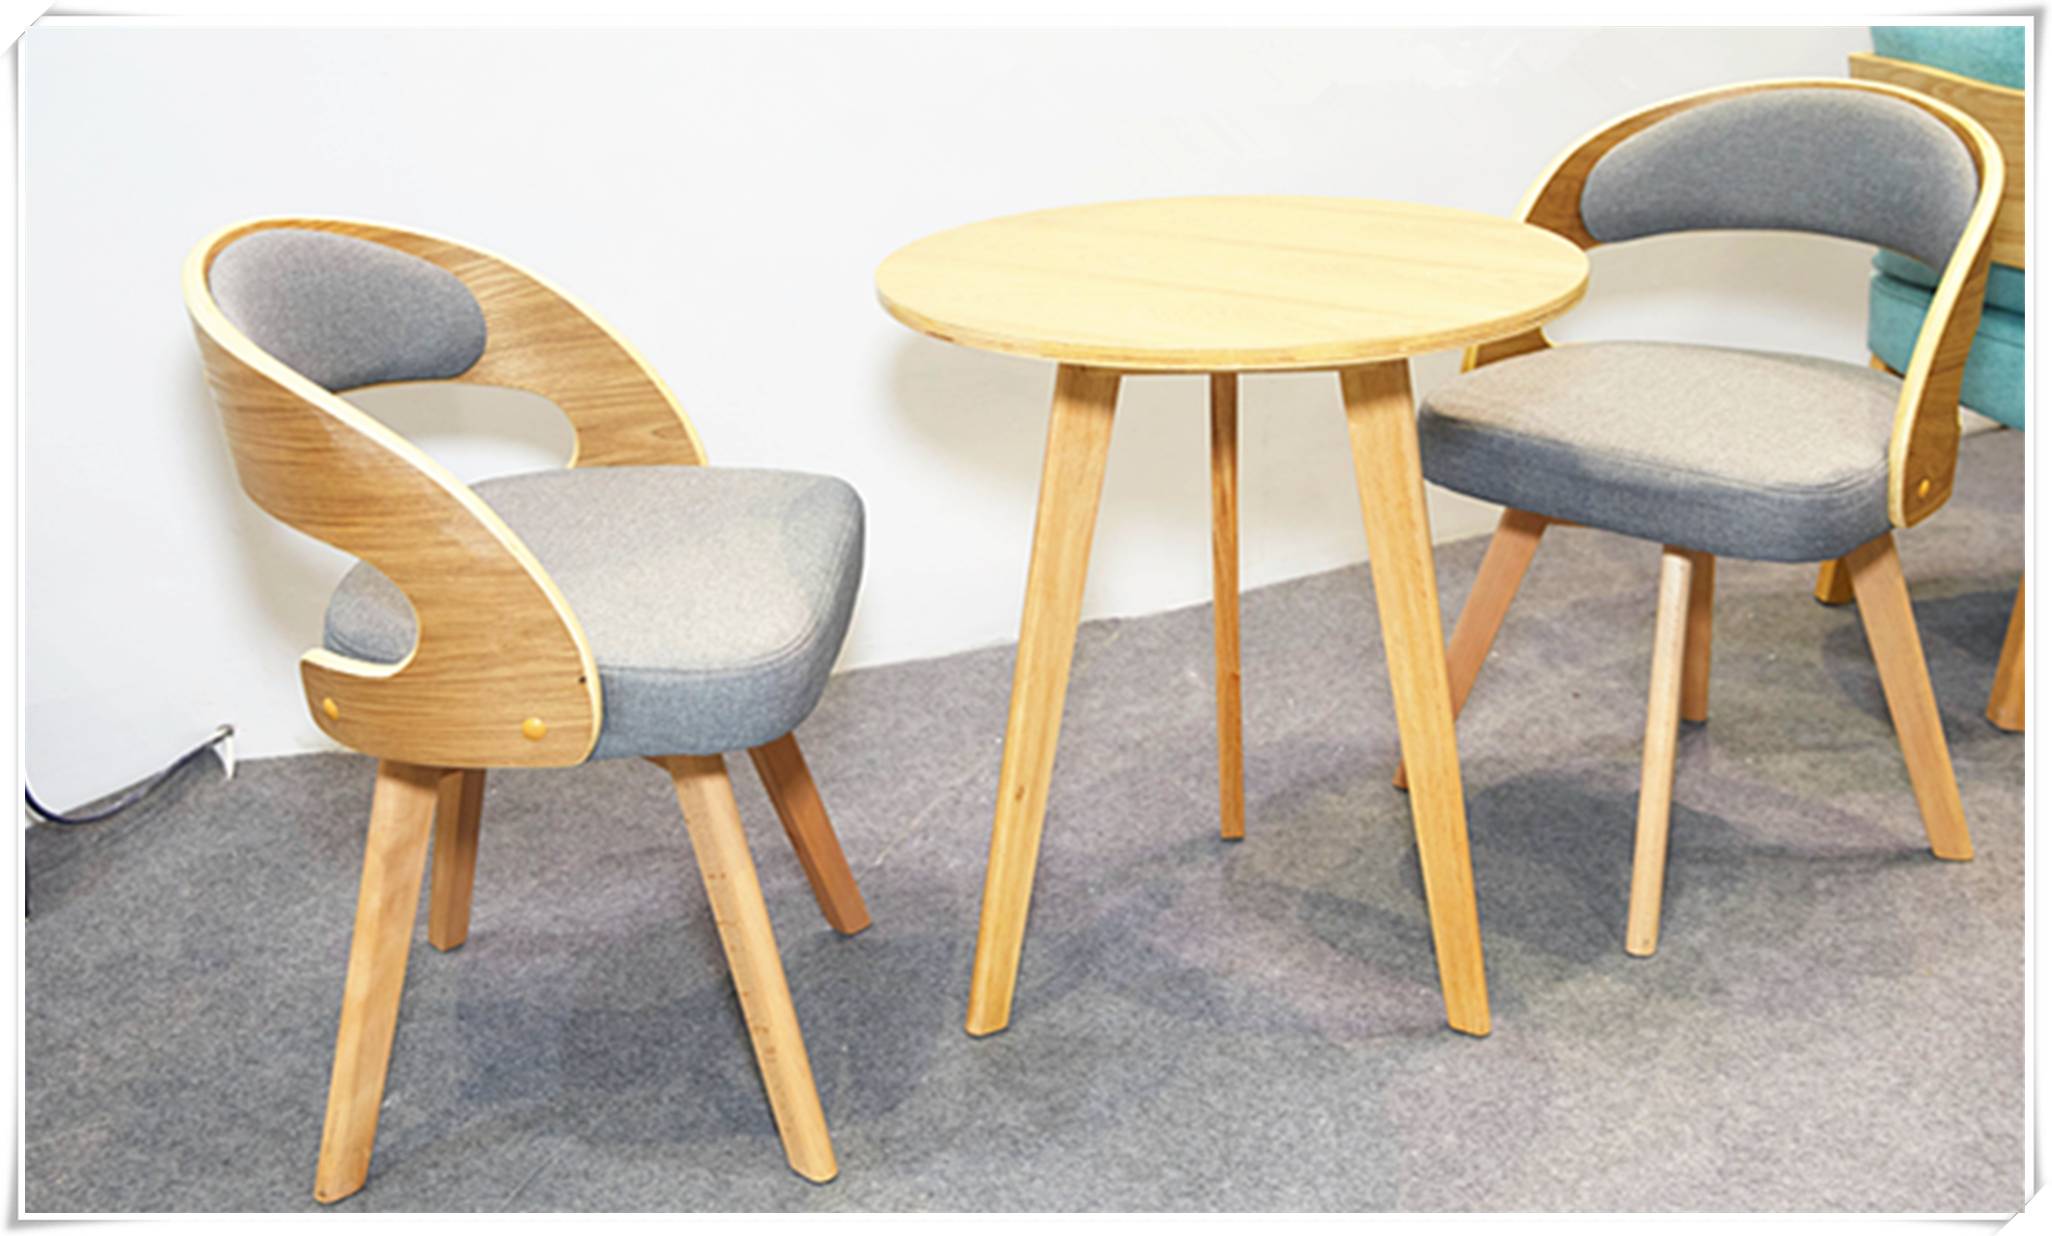 Small meeting table/chair